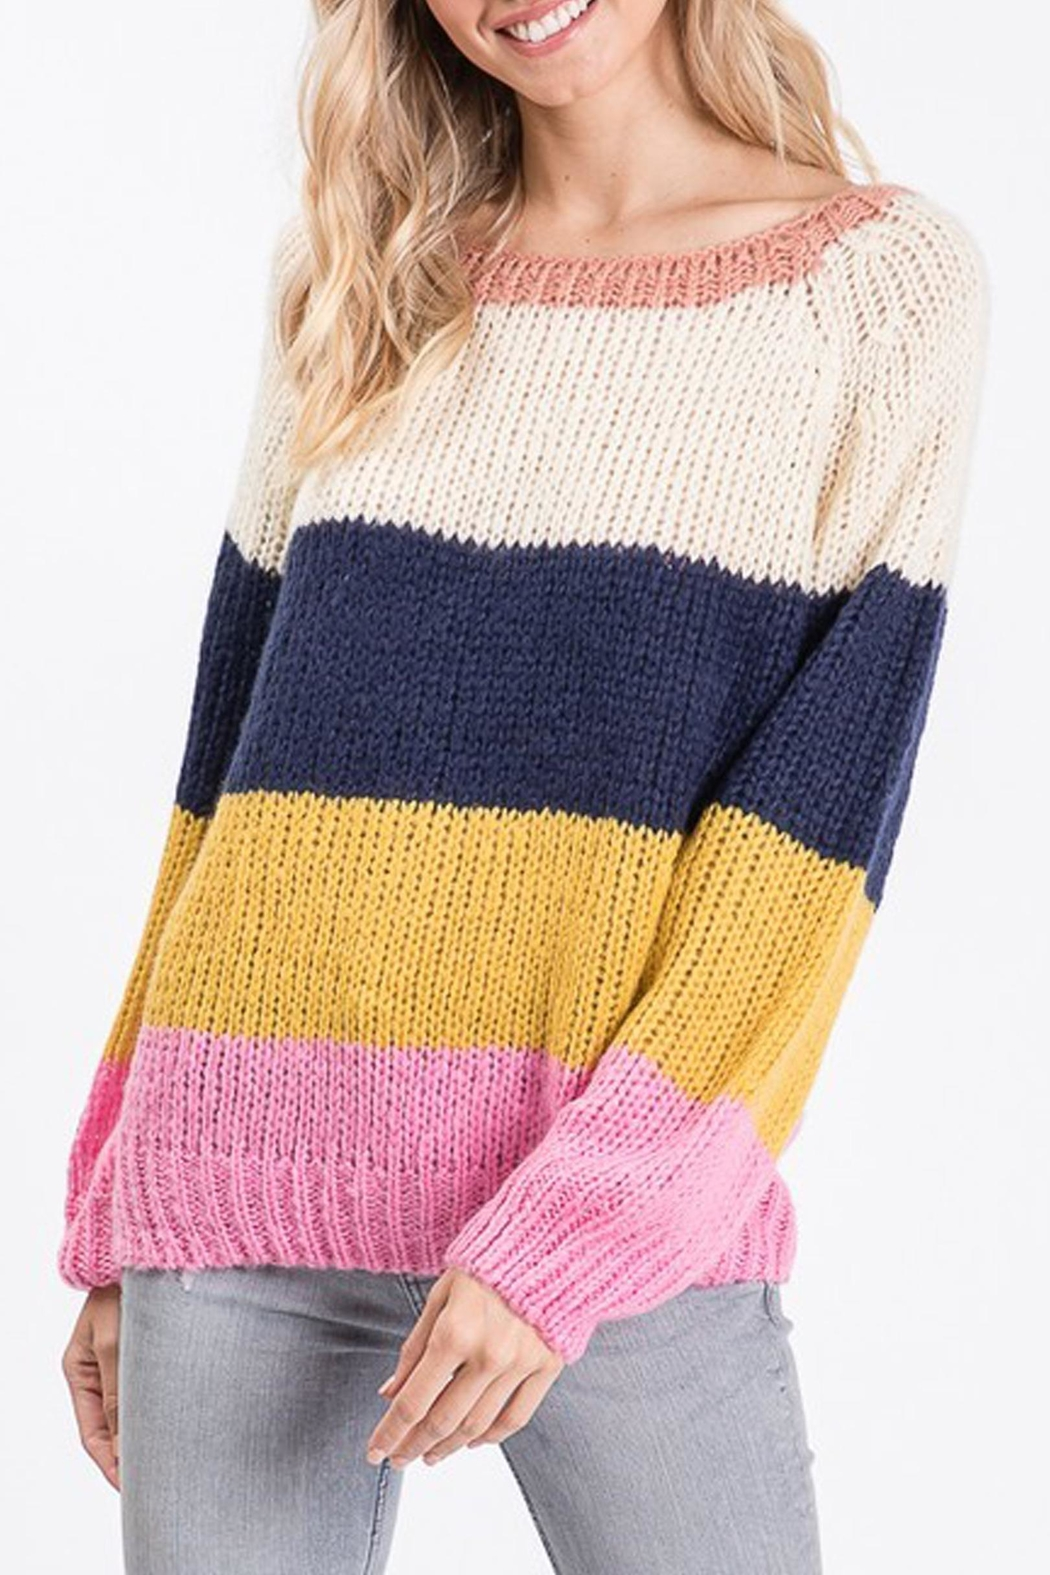 Style Trolley Rainbow Color-Block Sweater - Main Image